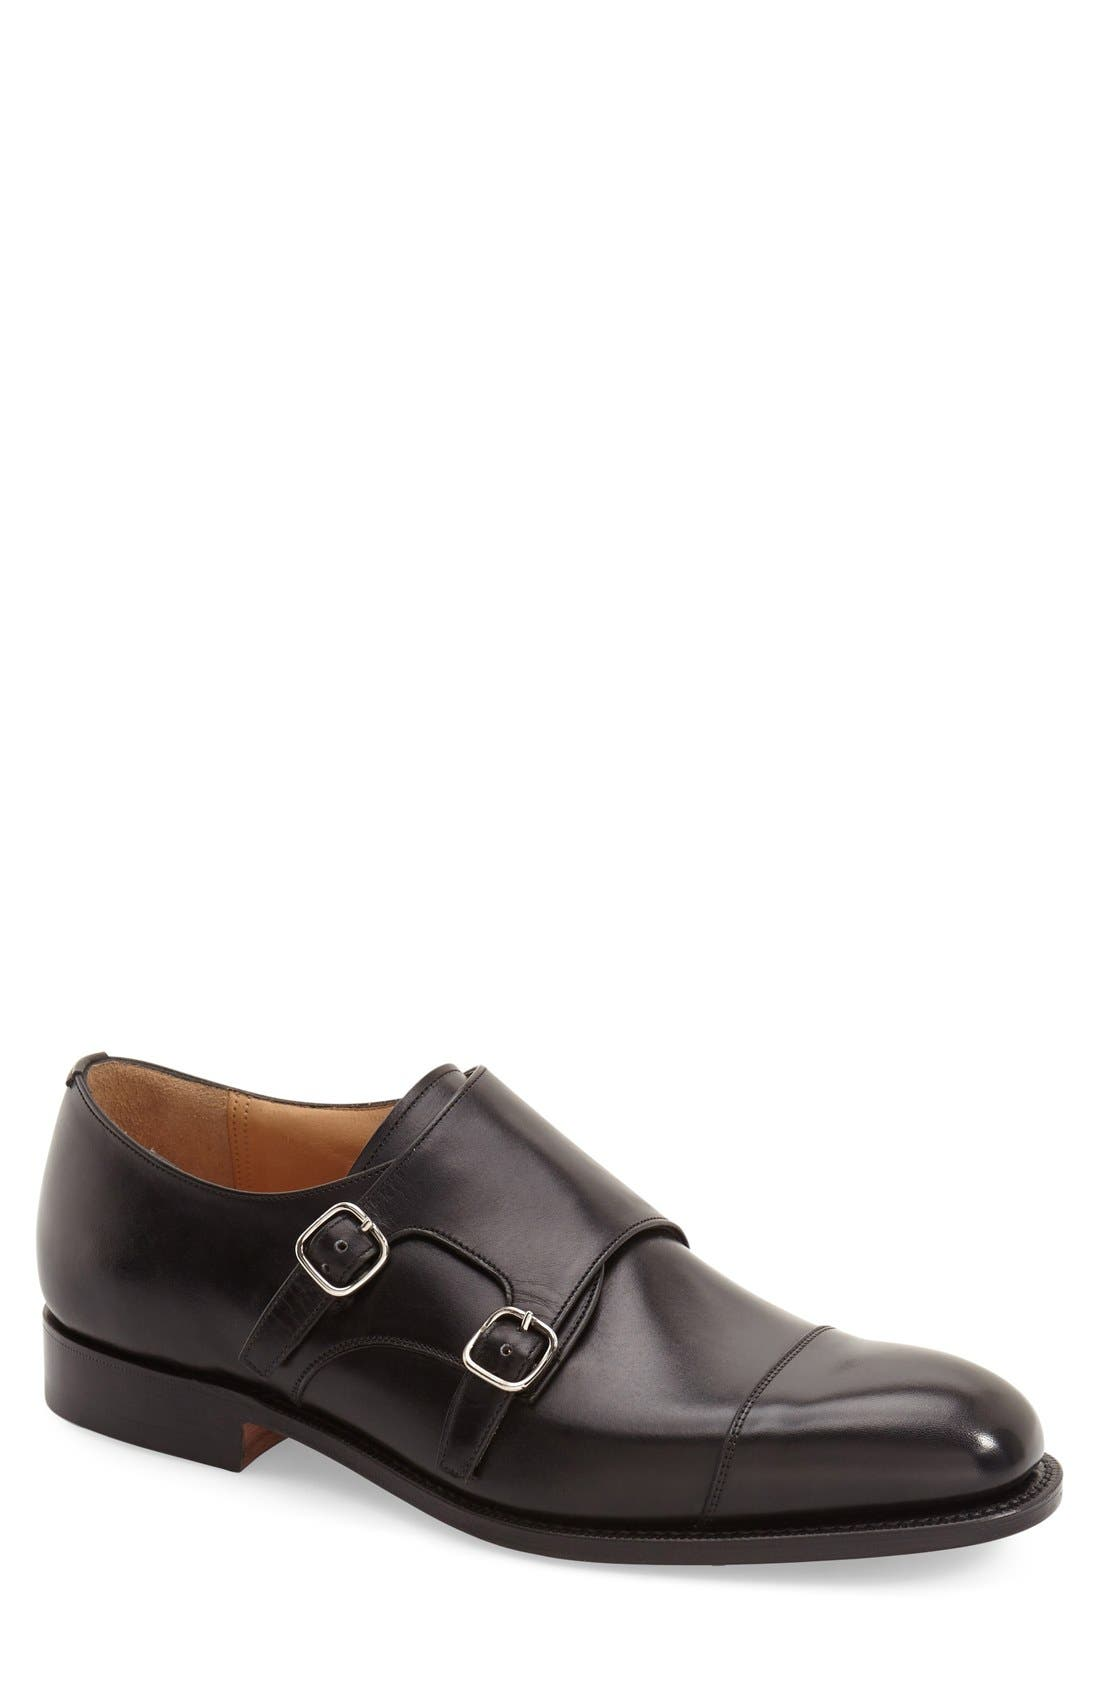 'Cowes' Double Monk Strap Shoe,                             Main thumbnail 1, color,                             Black Leather